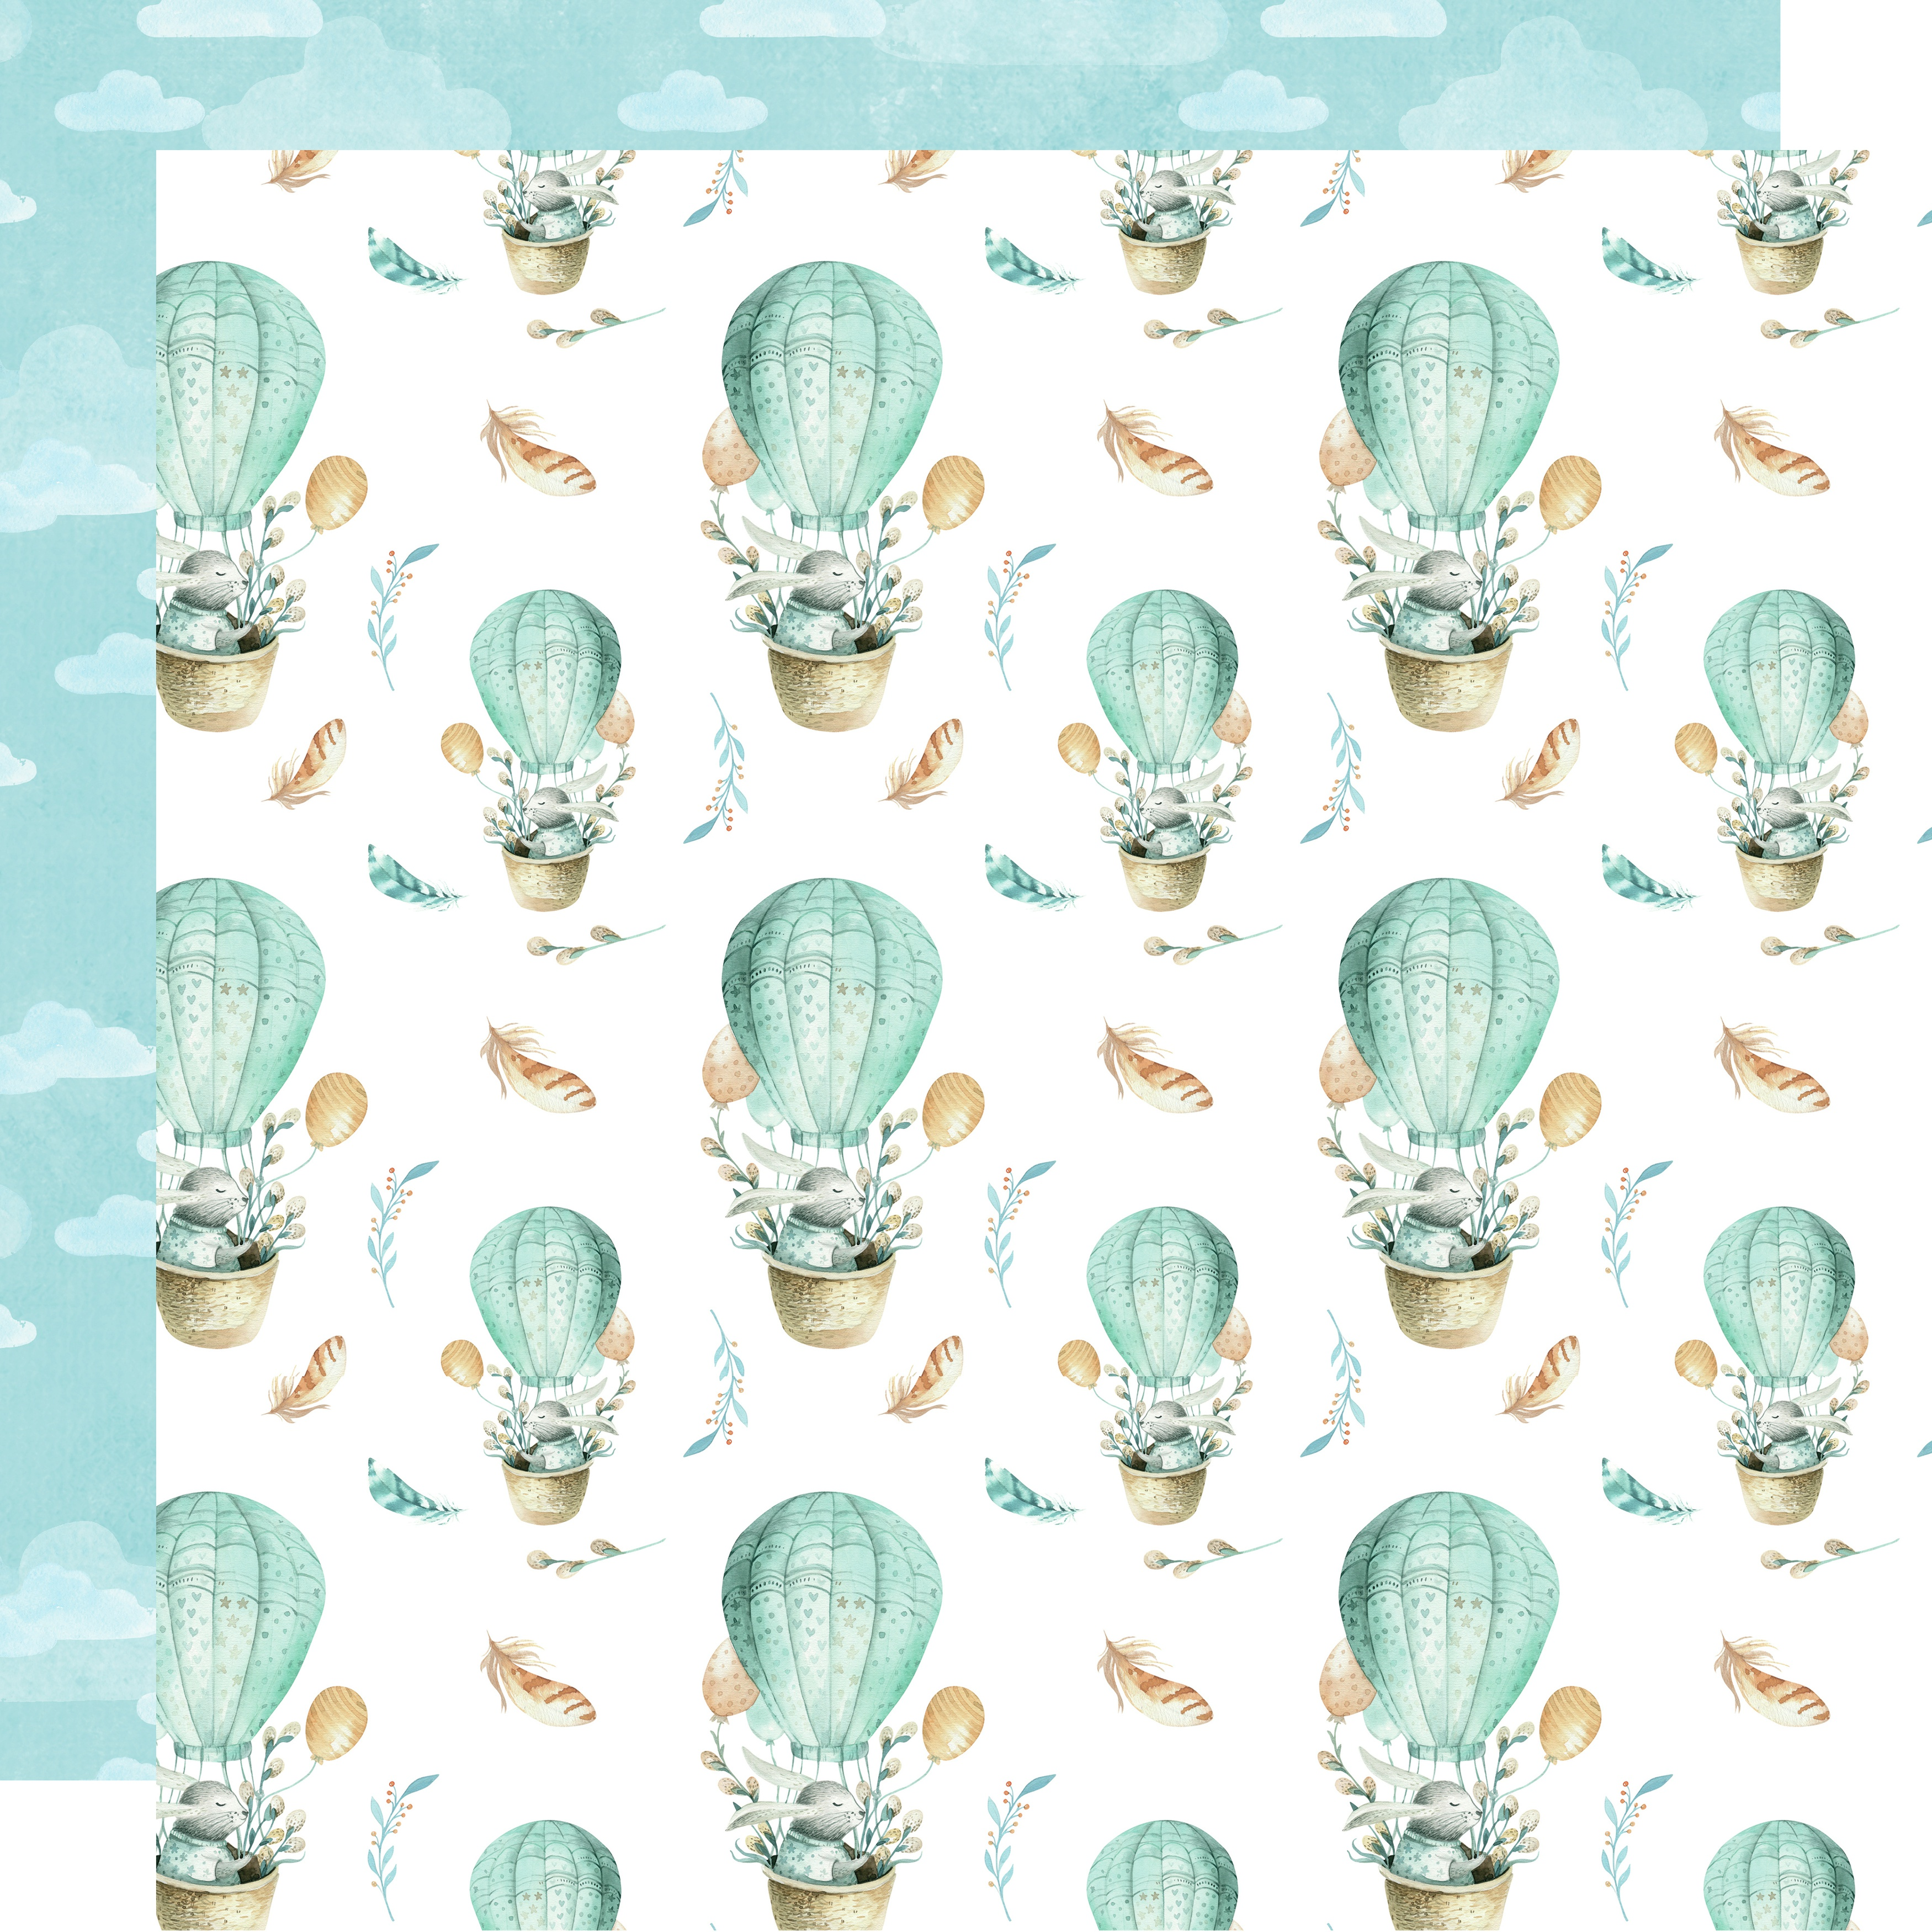 Kaisercraft - Little Treasures - DREAMLAND - 12X12 Double-Sided Paper